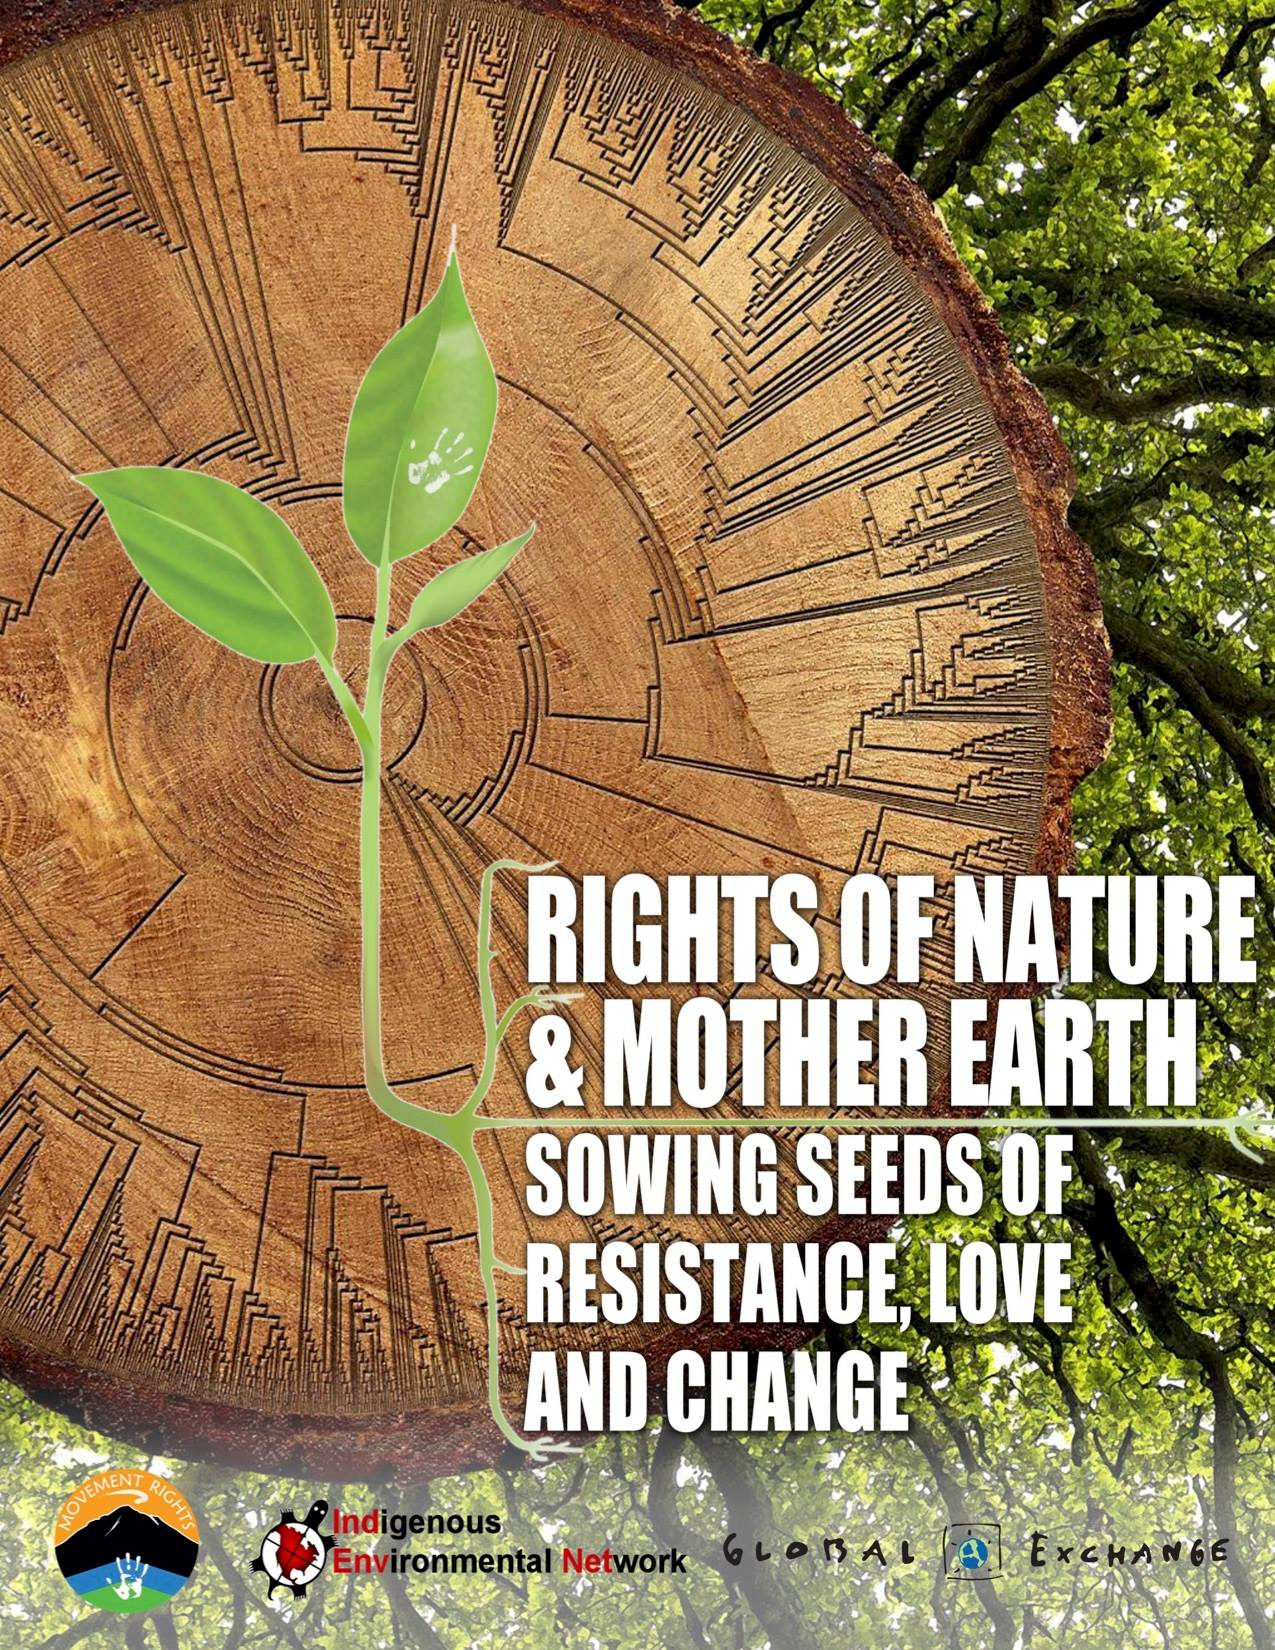 Rights of Nature & Mother Earth: Sowing seeds of resistance, love and change.